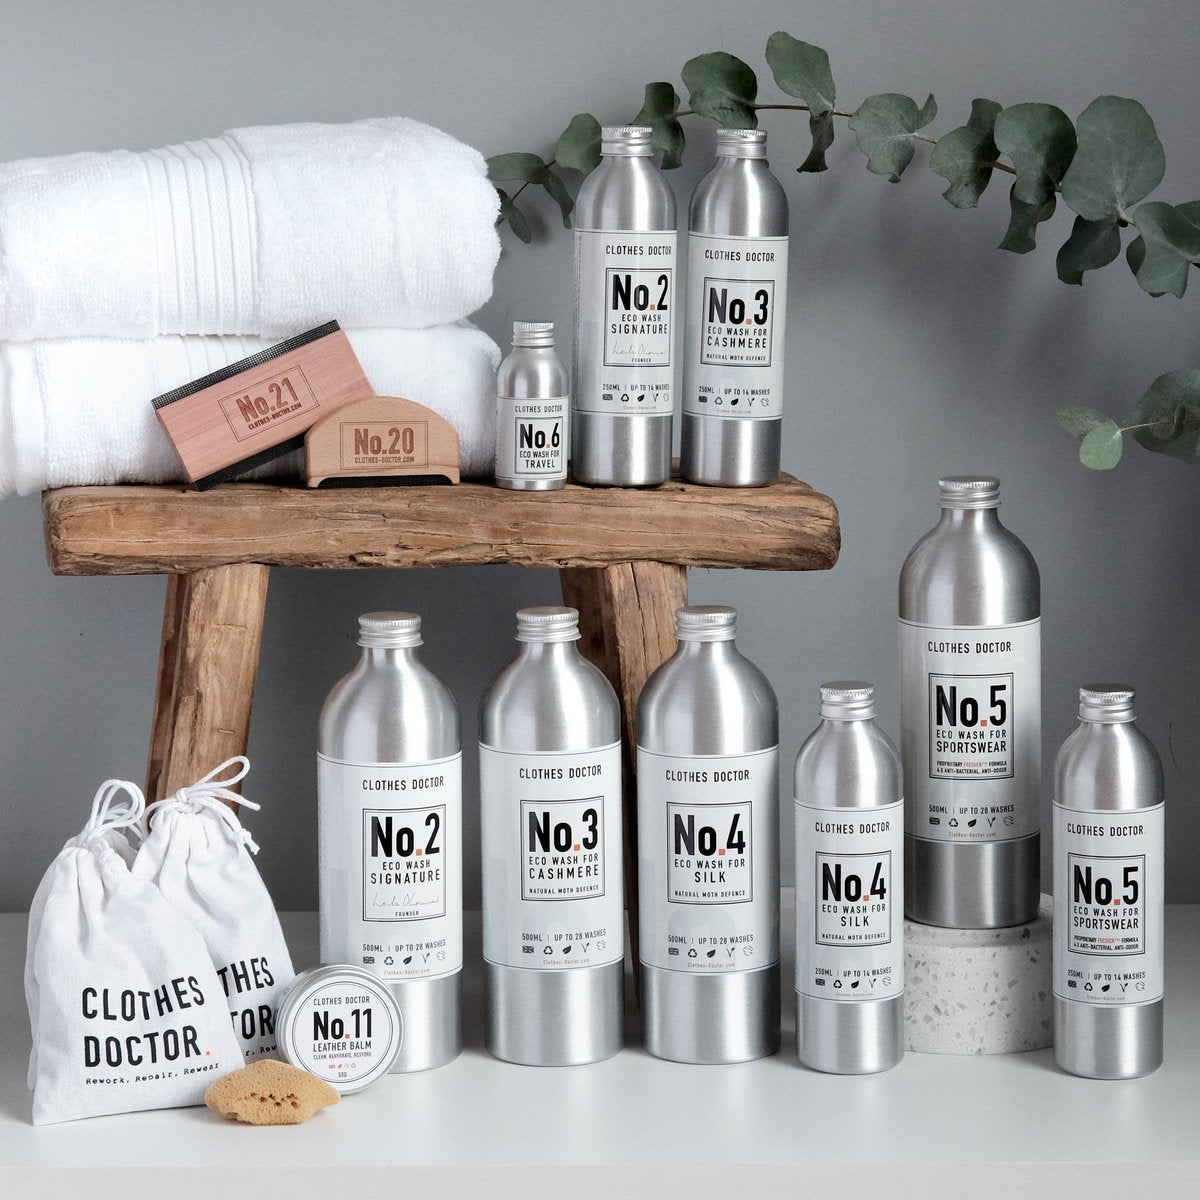 COMPLETE CLOTHING CARE KIT Clean (in 250ml), nourish, and revive your clothes with plant derived ingredients and blissful fragrances that are packed inside plastic-free bottles.